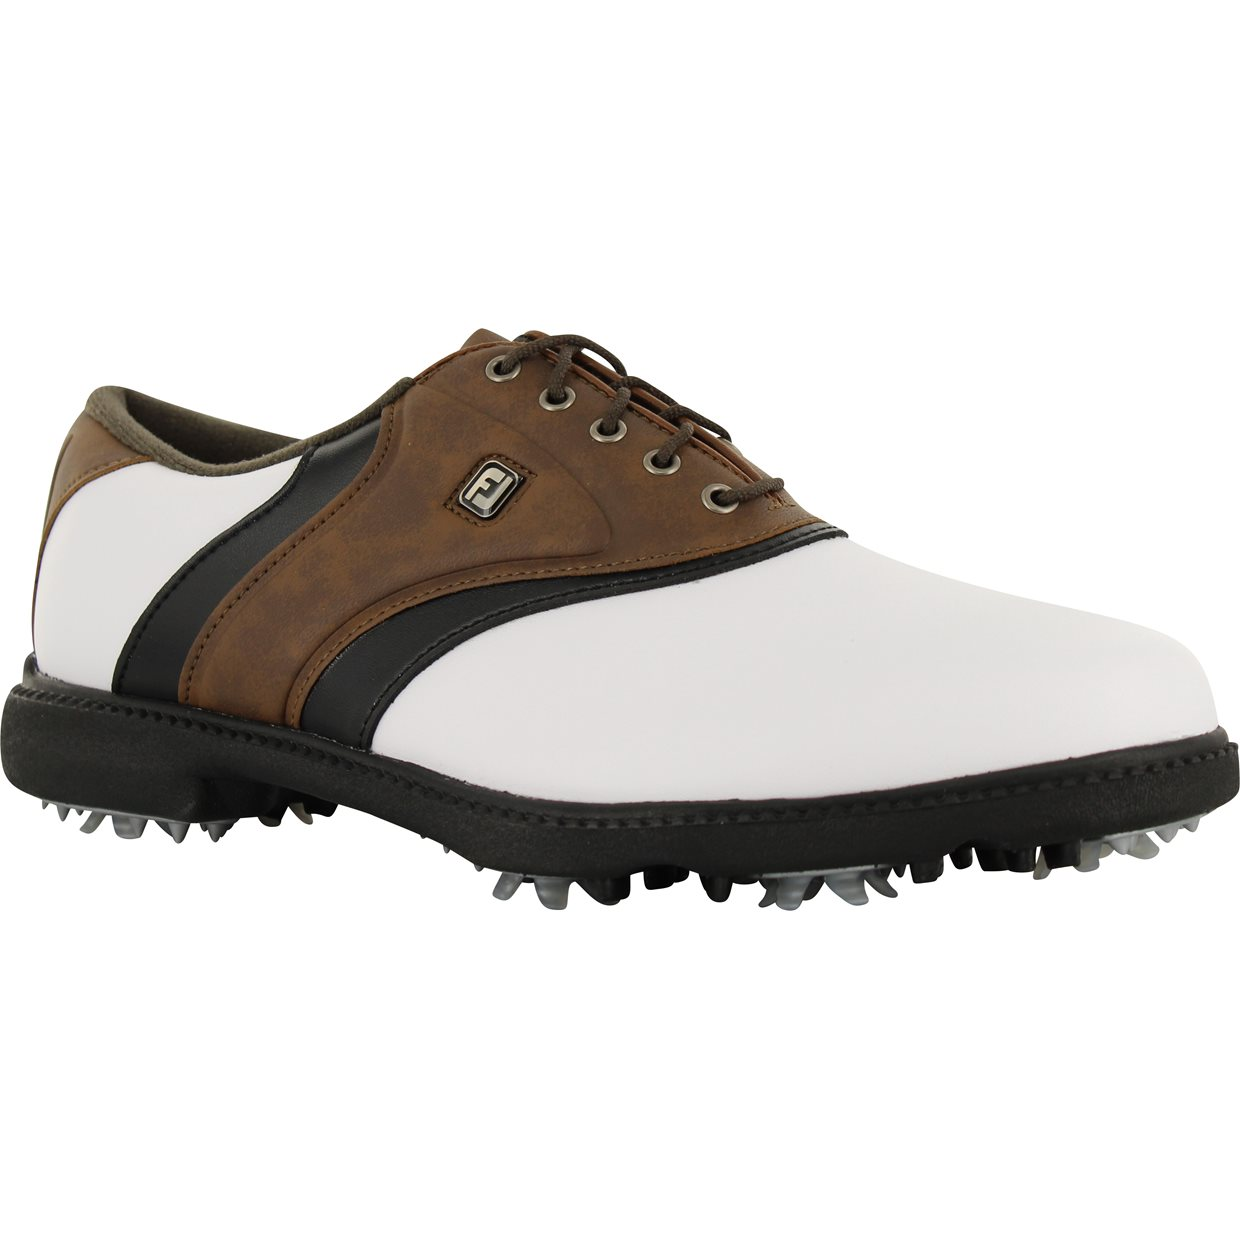 release date 7ff66 3d404 FootJoy FJ Originals Golf Shoe Shoes. Drag 360 Left or Right to View.  Alternate Product Image View 1 ...